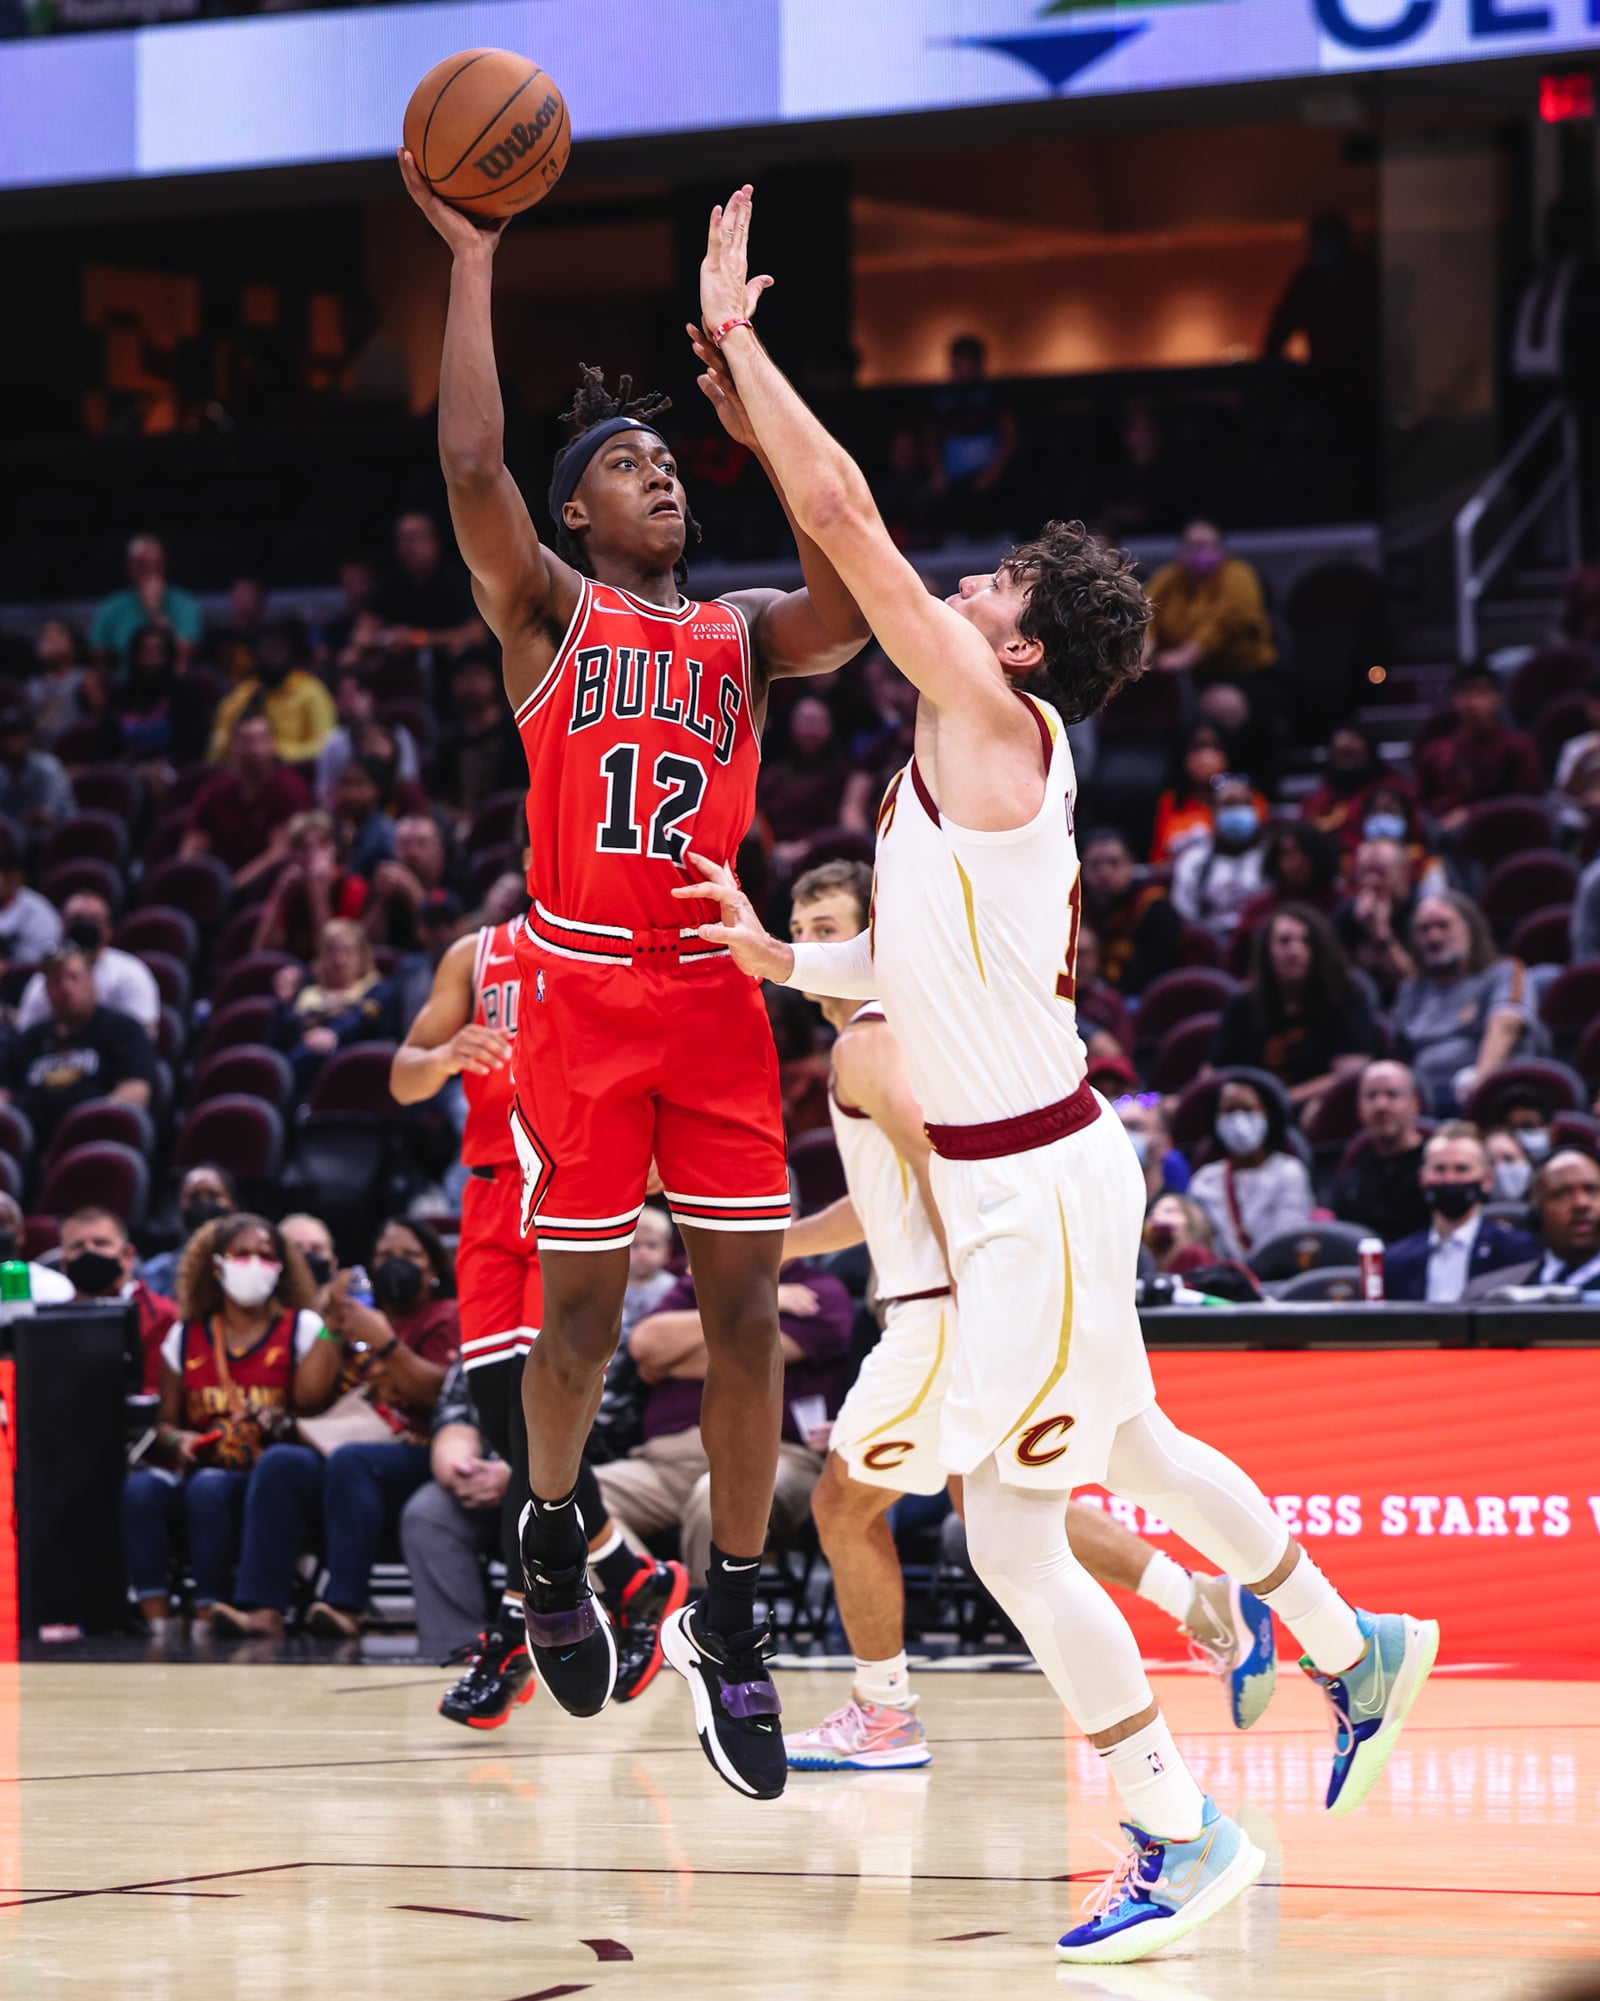 Ayo Dosunmu hits a clutch floater in the final moments of the game to secure Chicago's third preseason win.